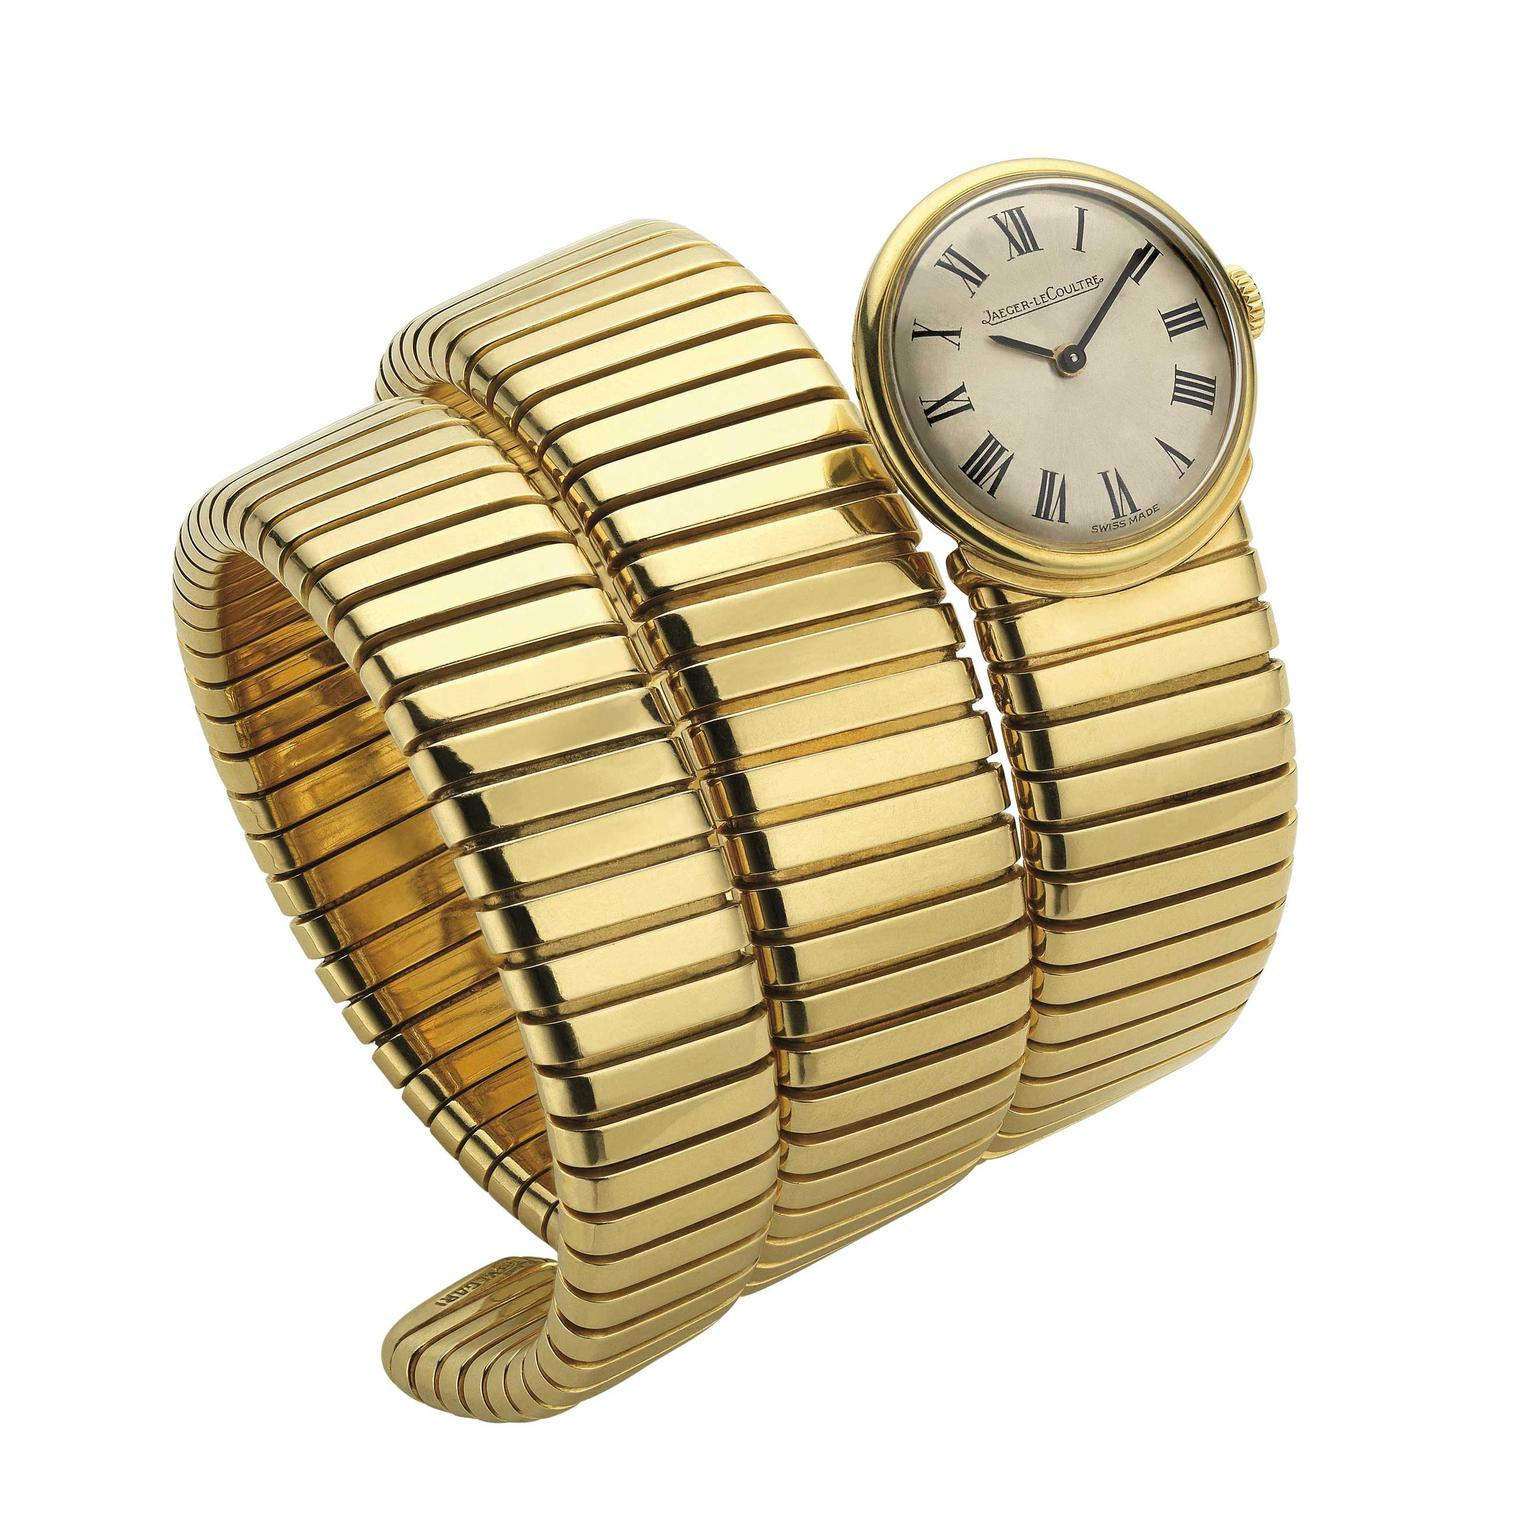 Bulgari Tubogas bracelet watch in yellow gold from circa 1955